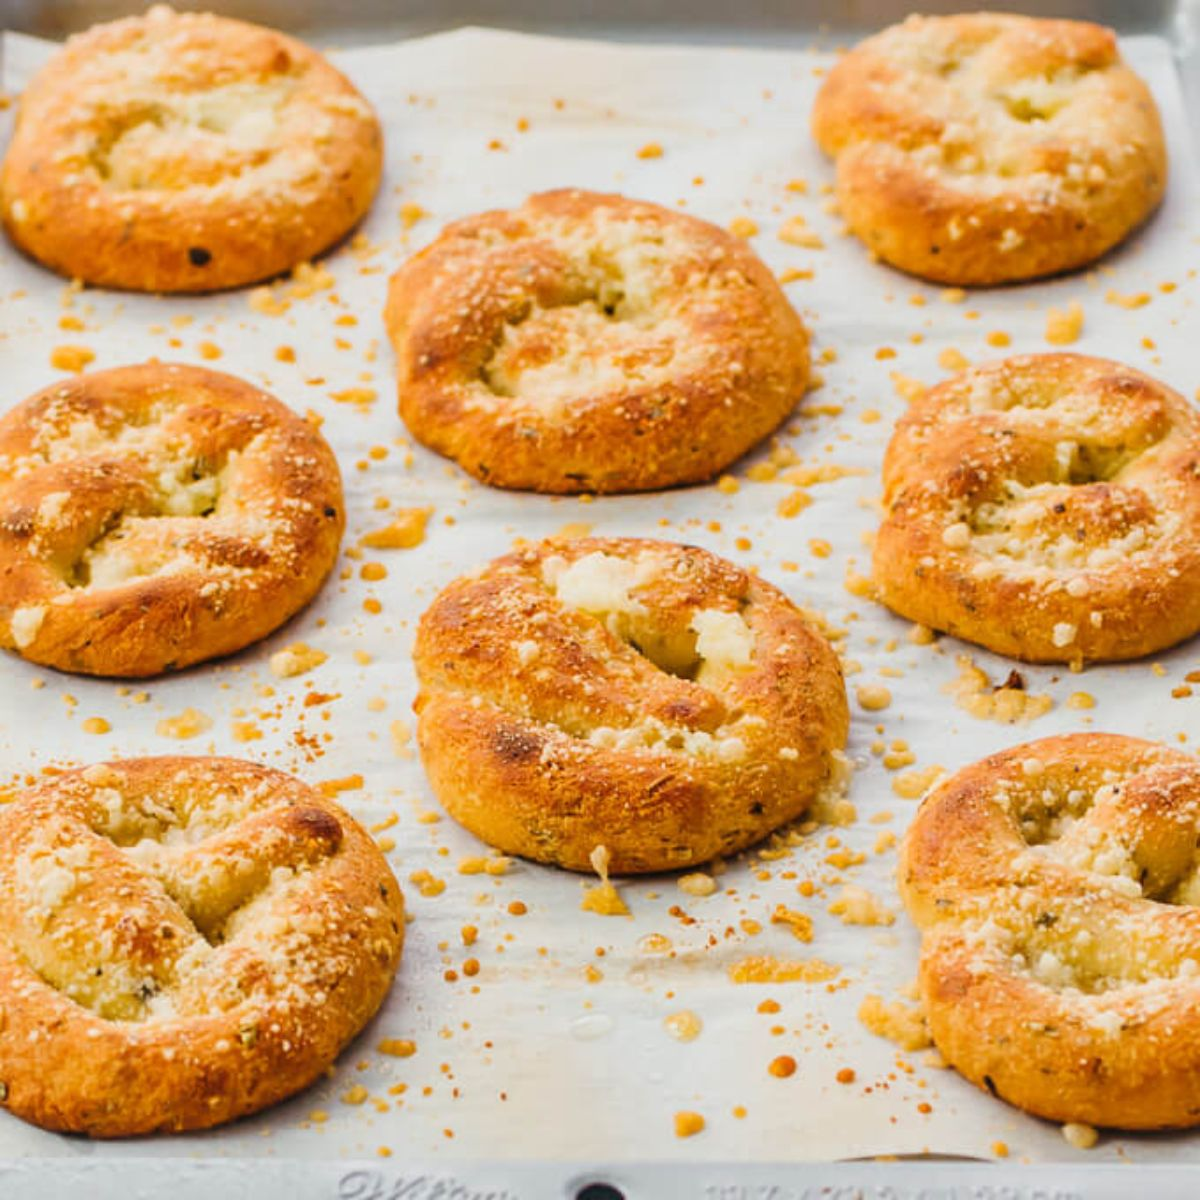 On a baking sheet are 8 round twisted rolls sprinkled with cheese